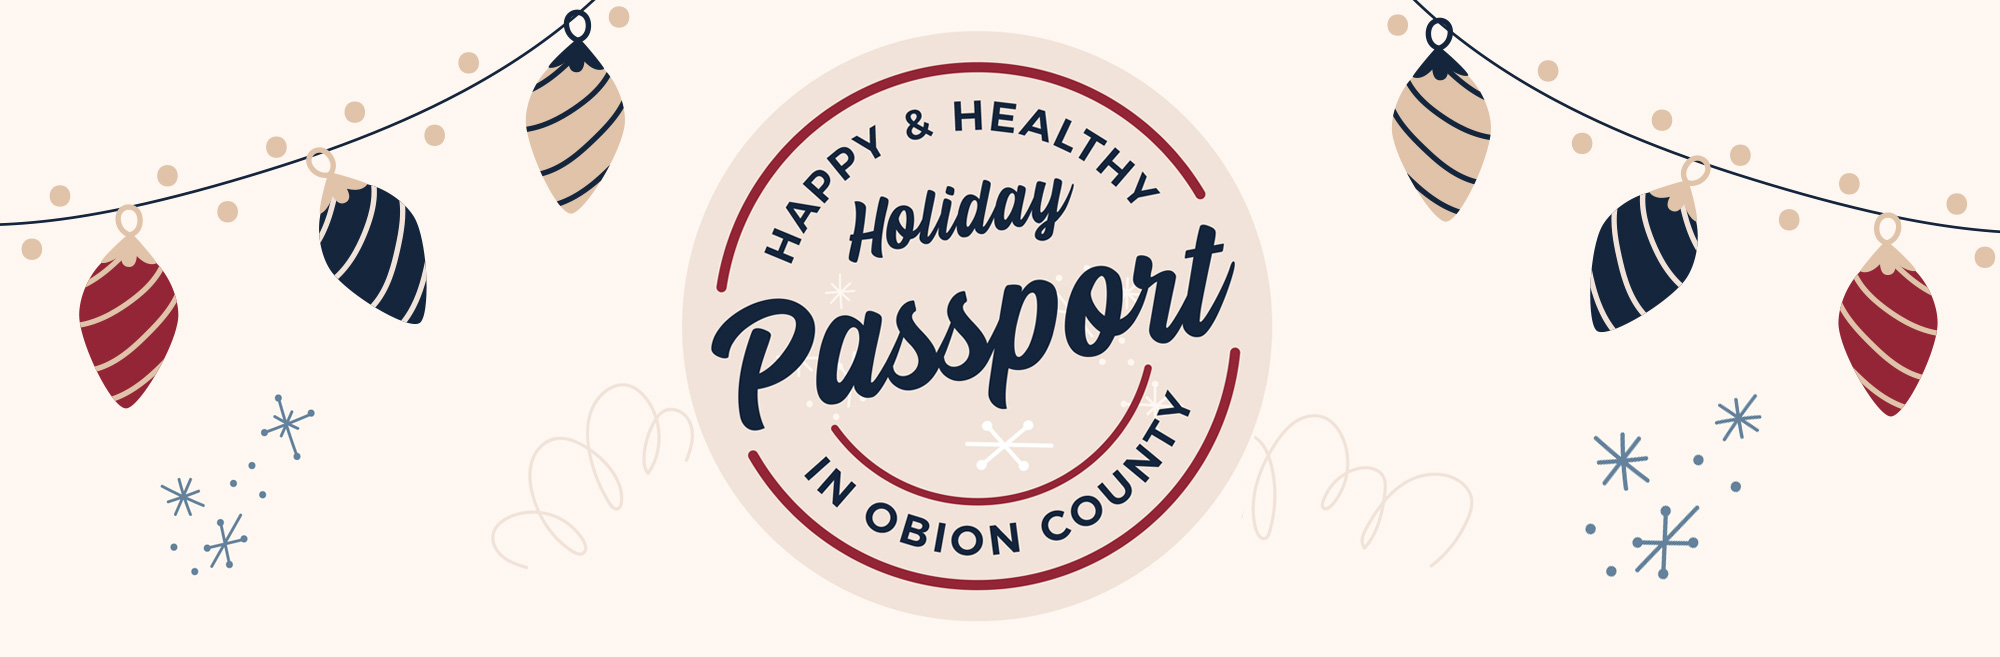 Holiday Passport